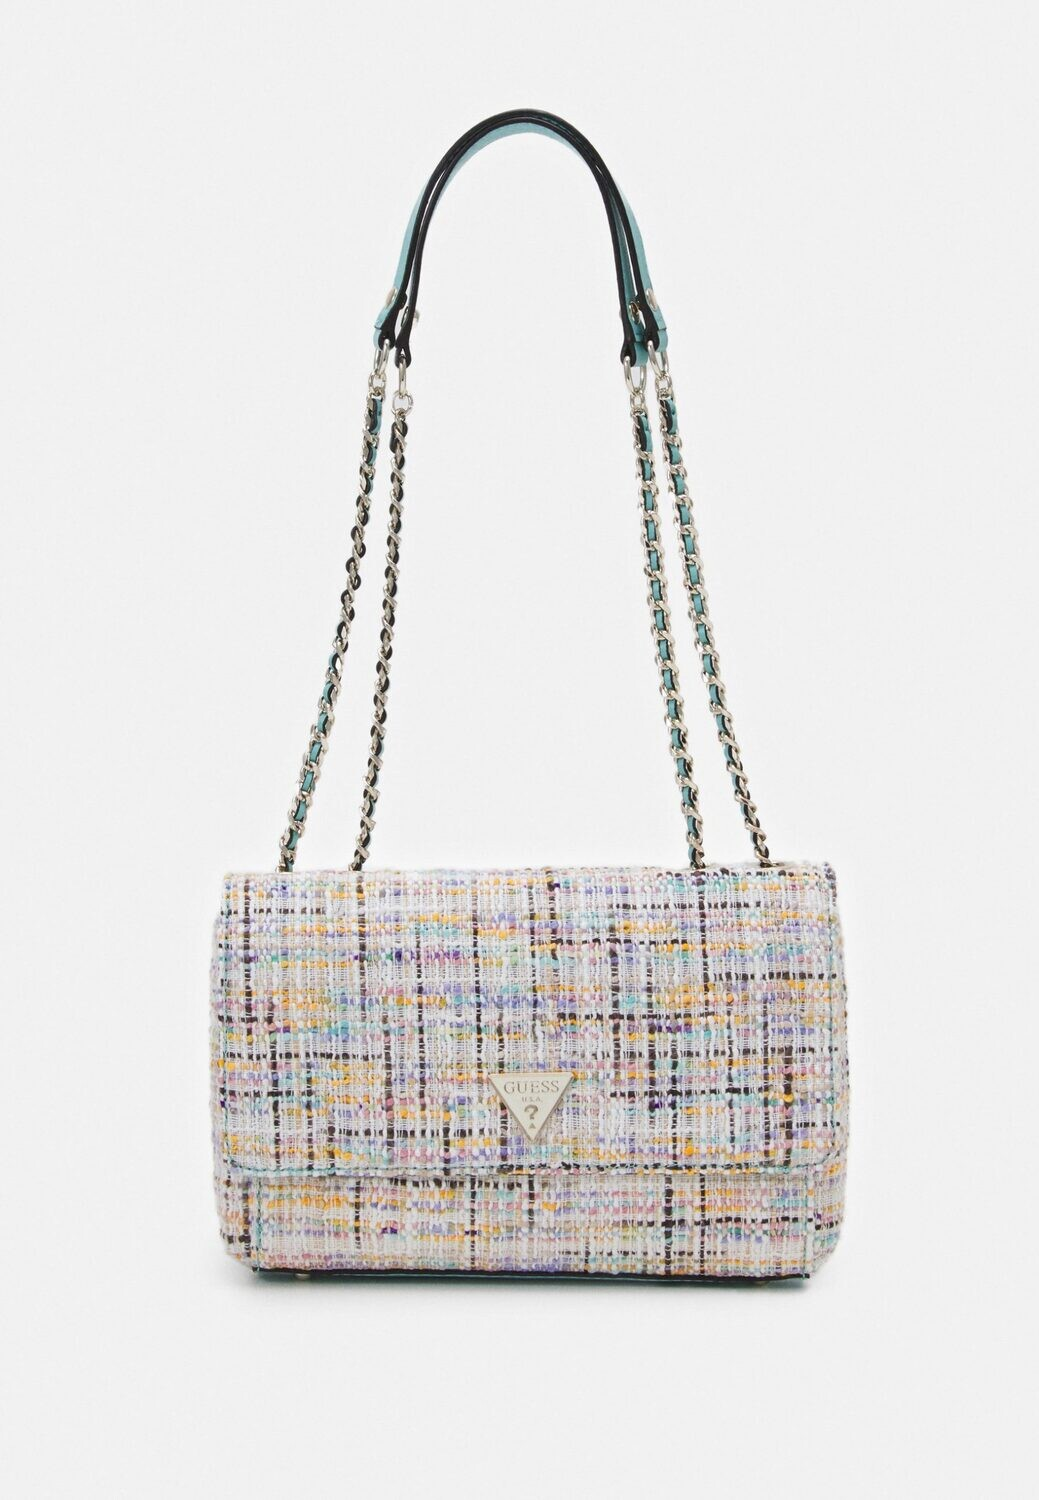 GUESS CESSILY CONVERTIBLE TWEED CROSSBODY